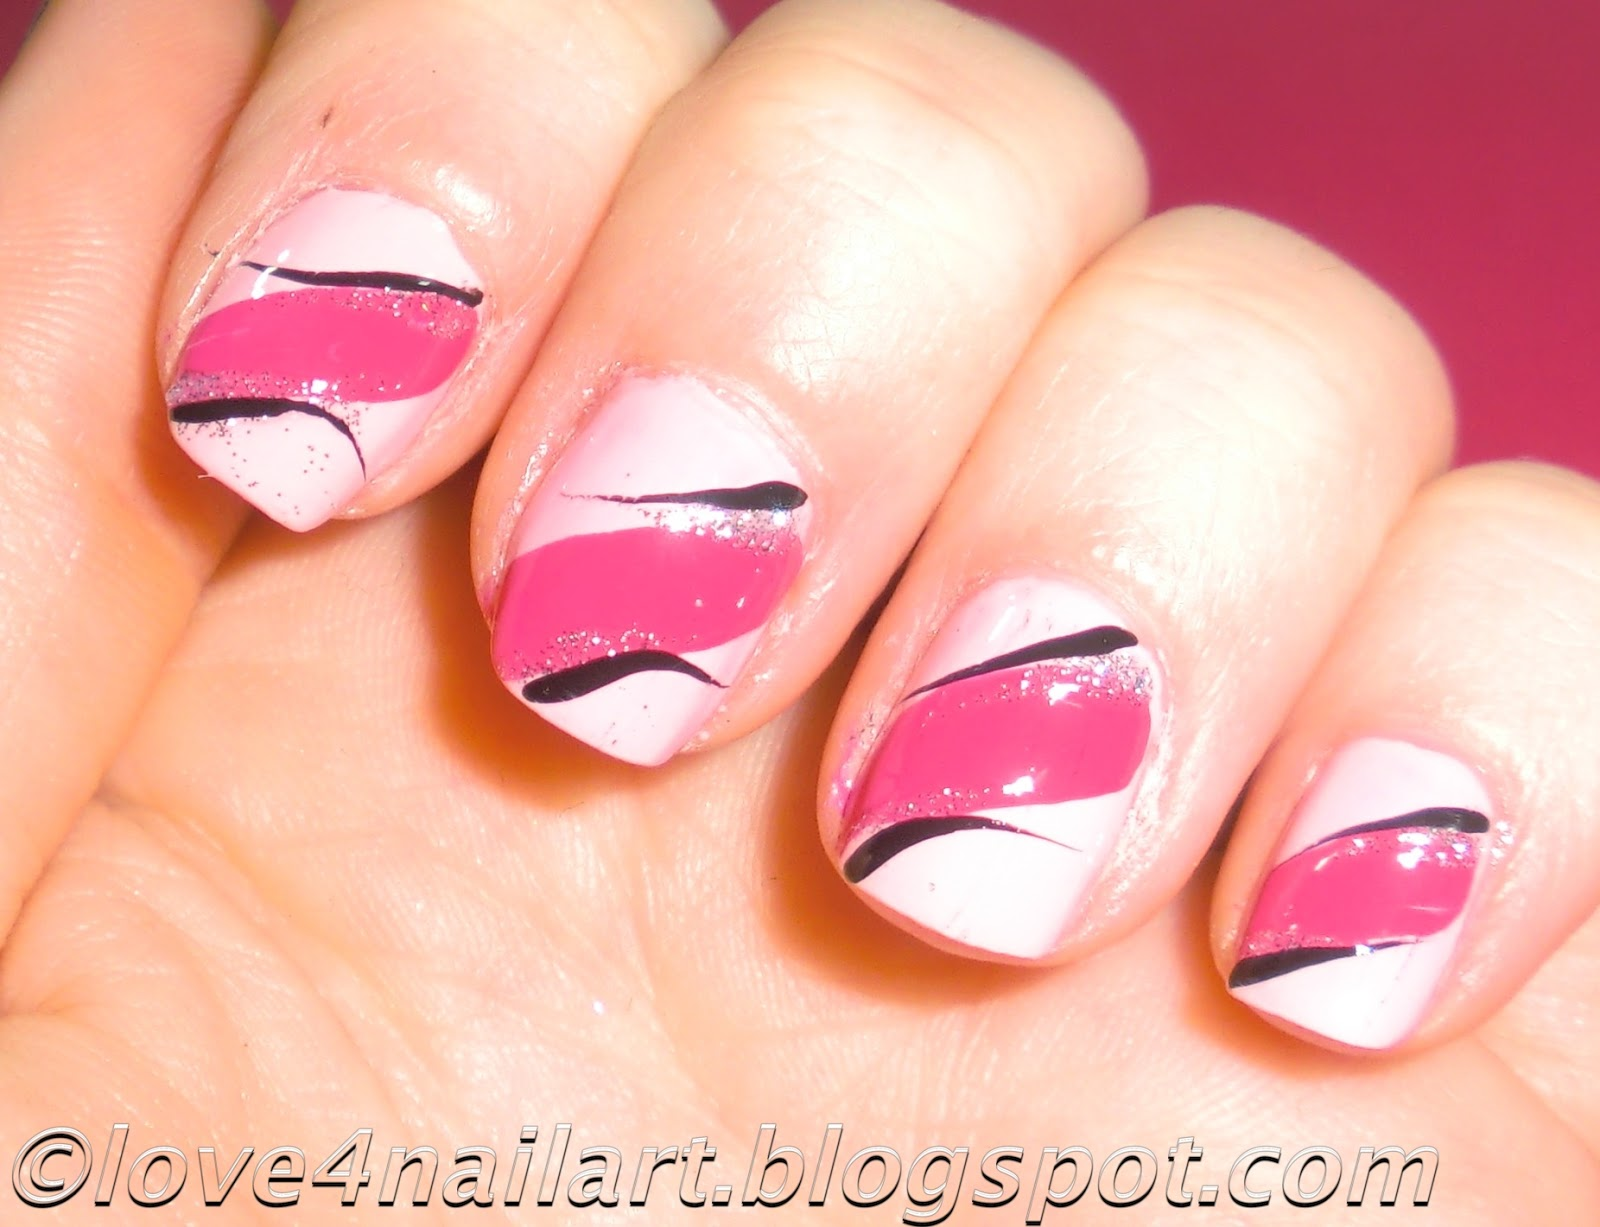 19 Step By Step Nail Designs For Short Nails Images - Easy Nail ...